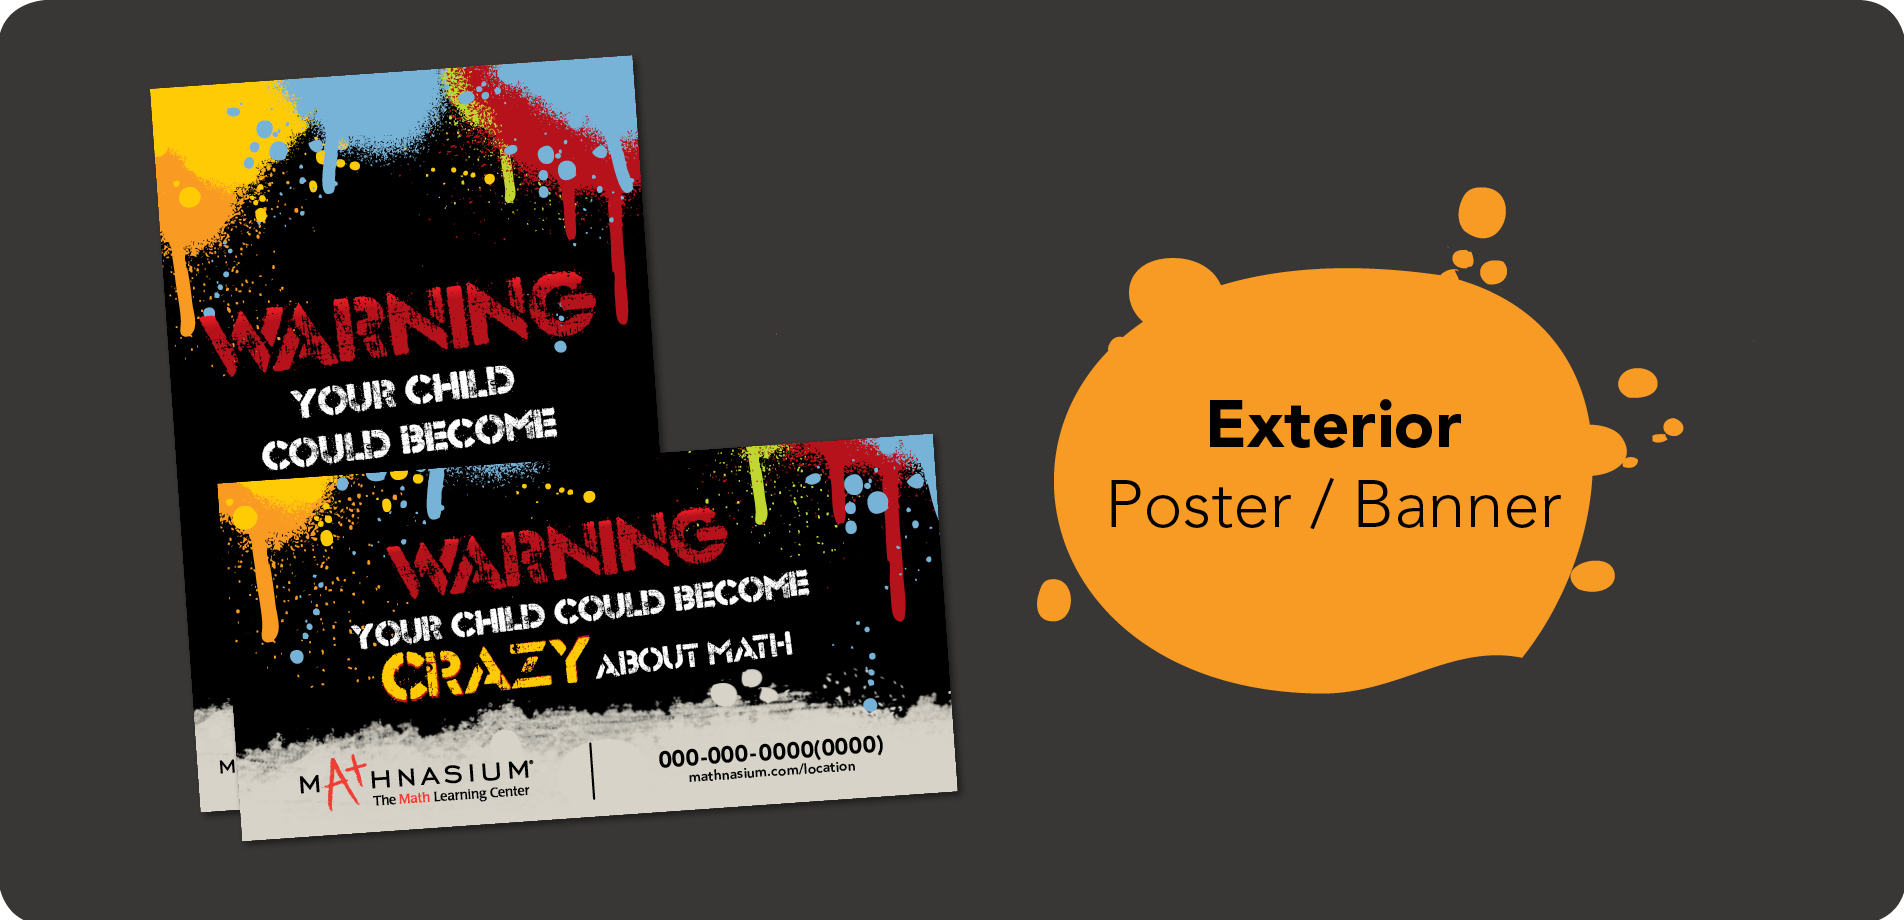 Examples-Banner-Poster-Warning-2016